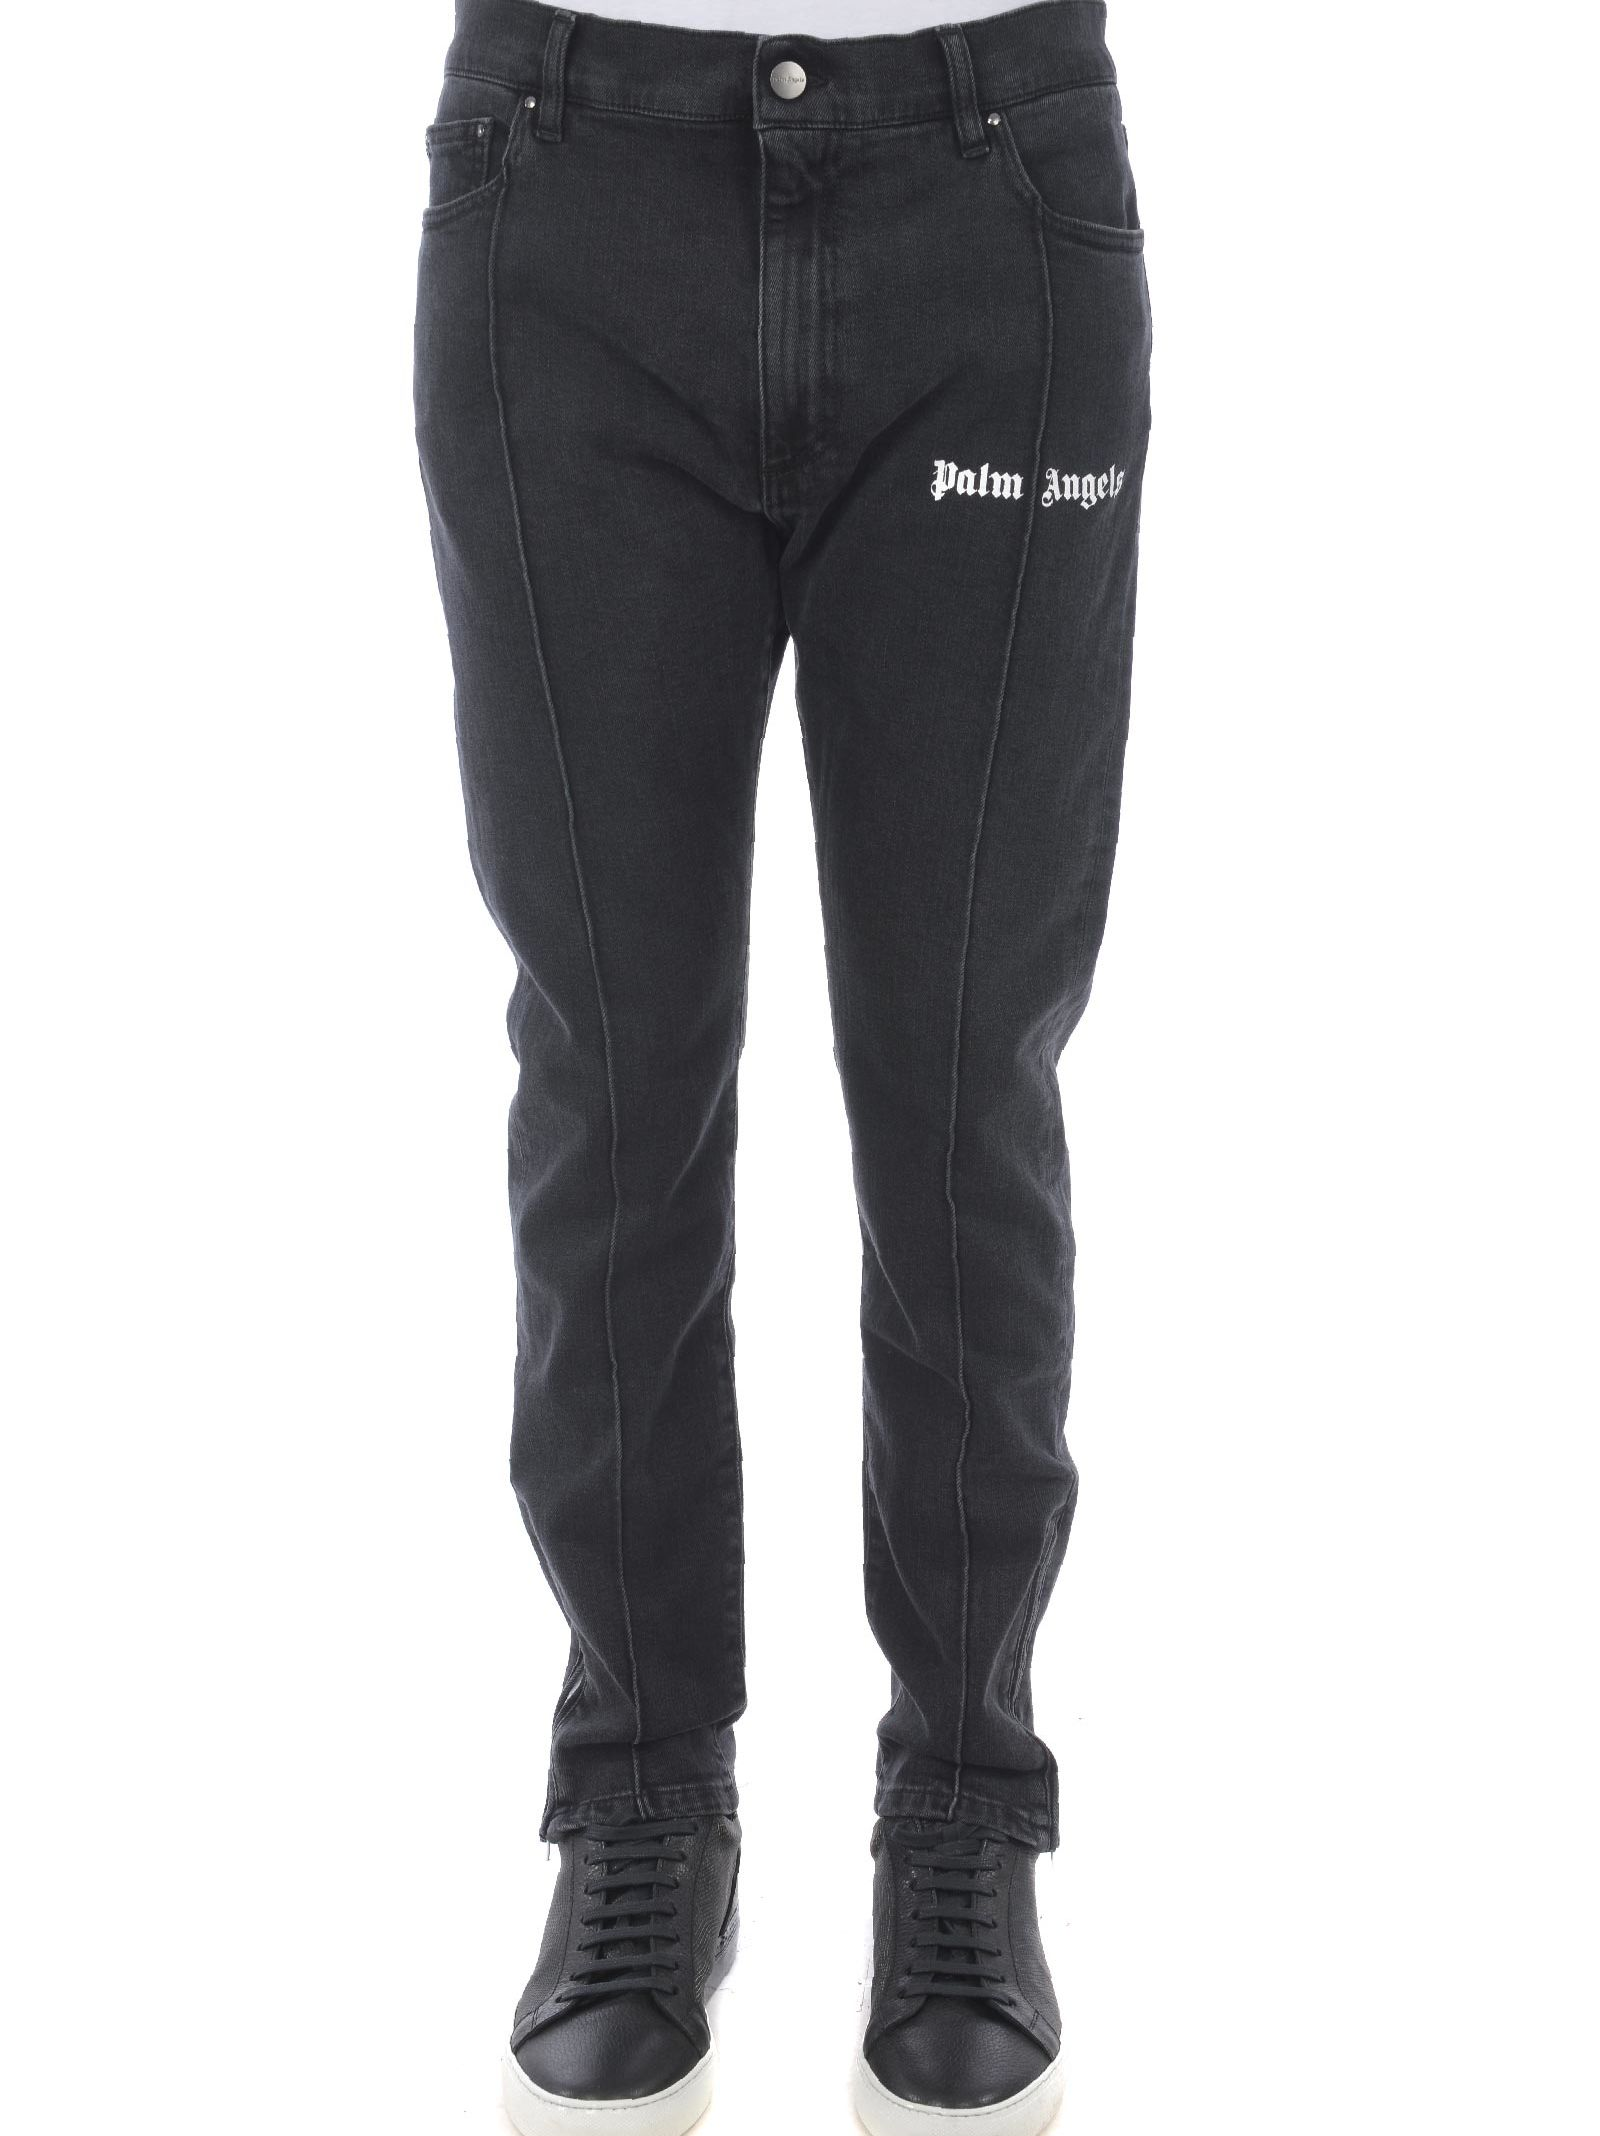 Palm Angels Logo Embroidered Jeans